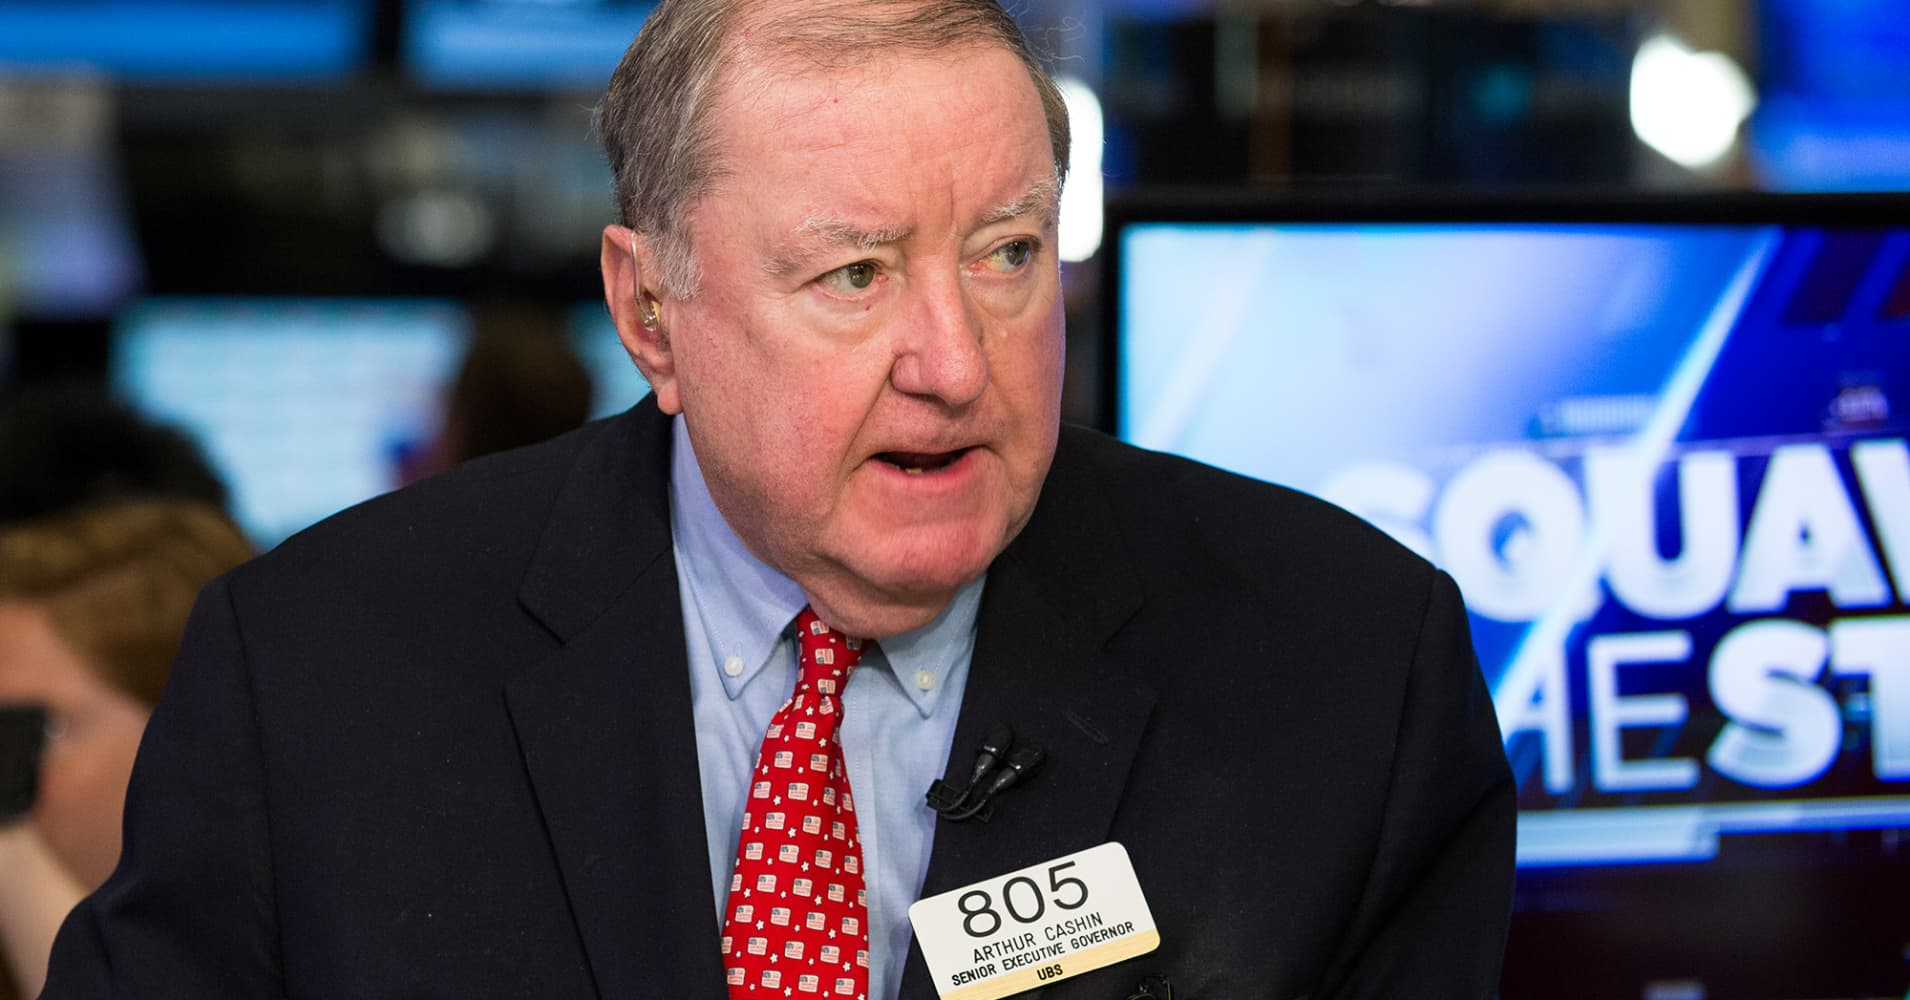 Art Cashin warns about a 'wild card' remark on a 2008 financial crisis repeat